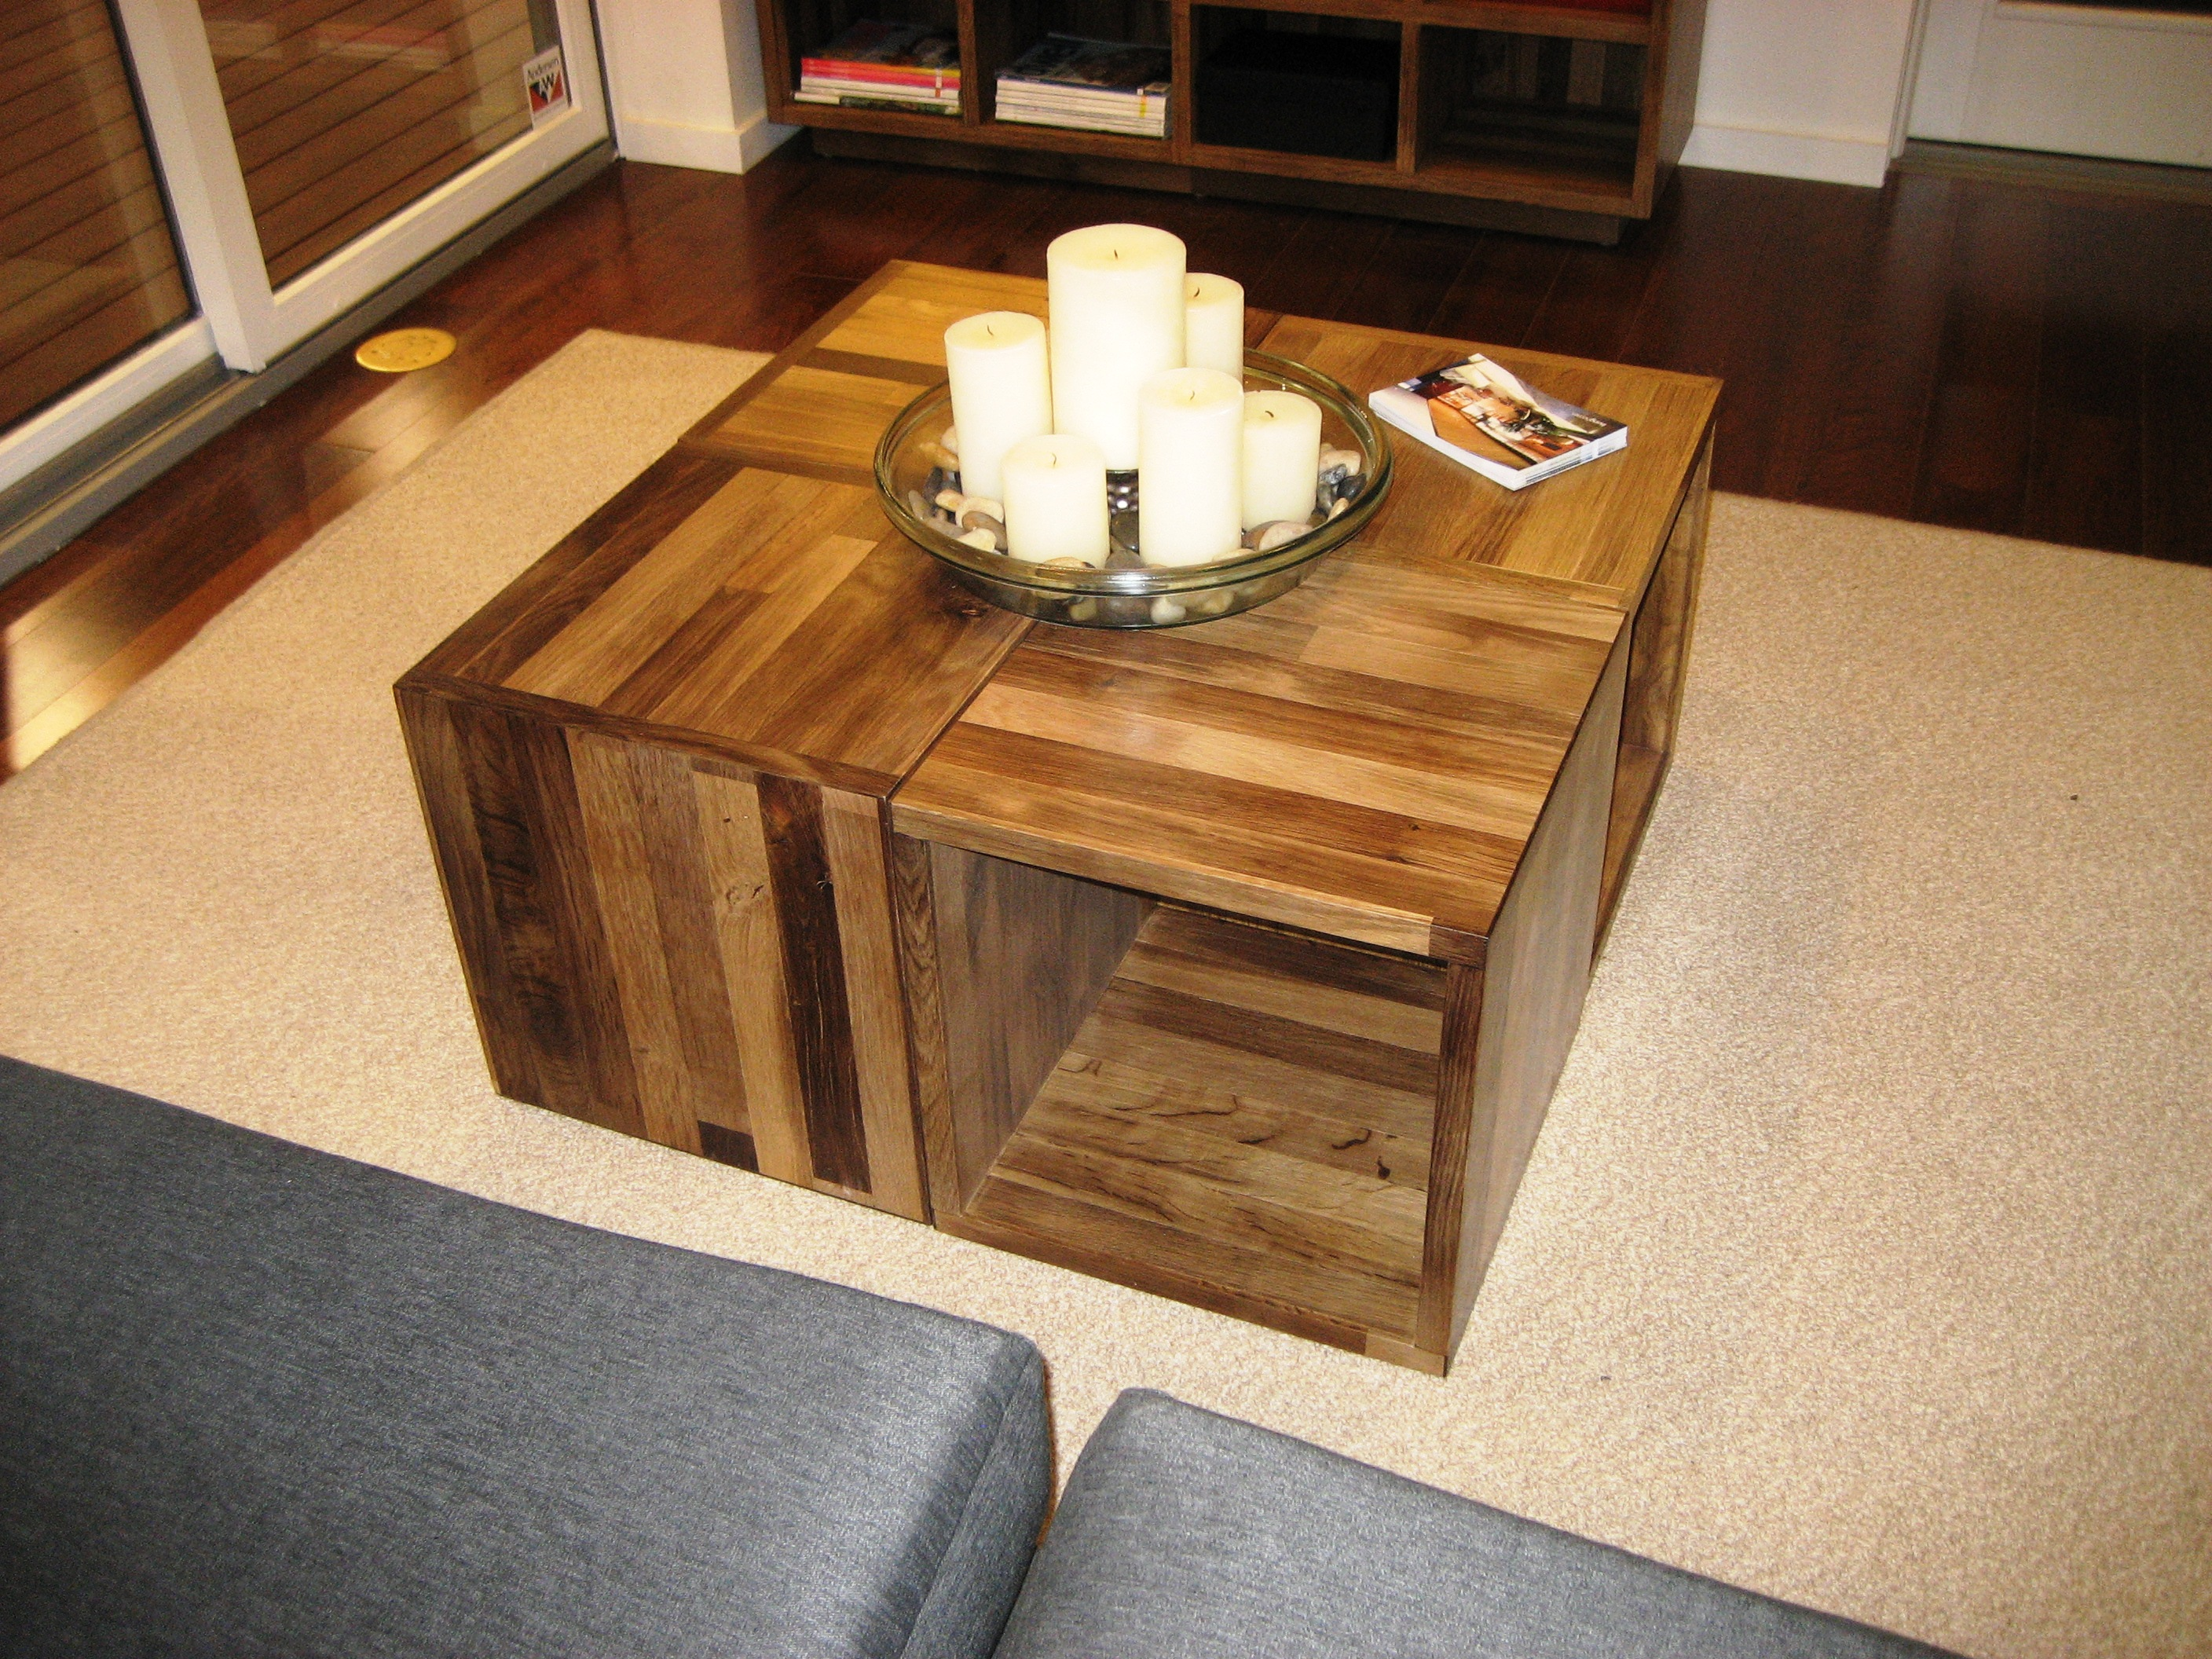 Funky Coffee Tables Create More Inviting Look to Your Living Room